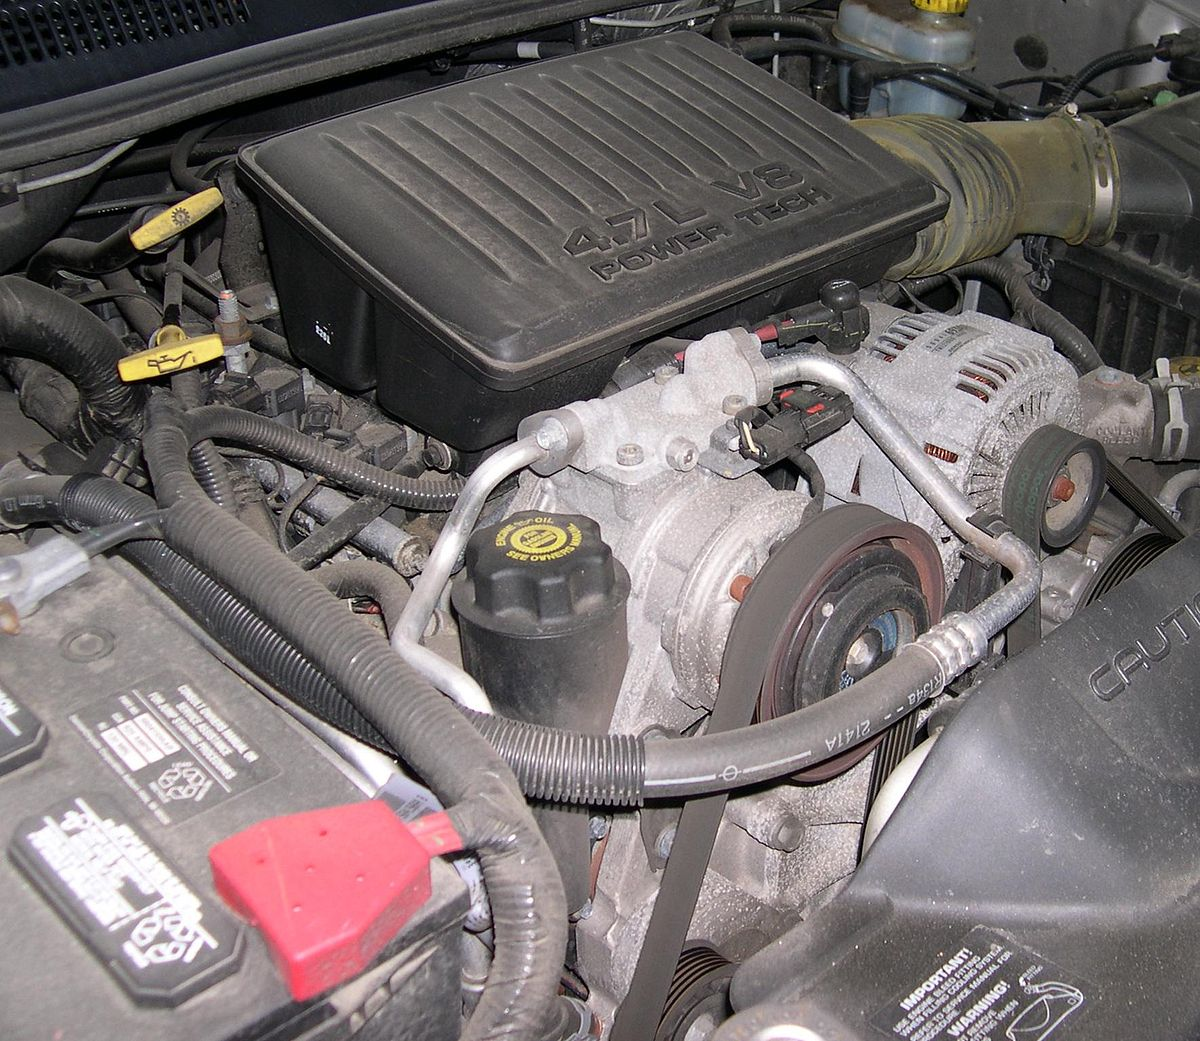 chrysler powertech engine - wikipedia  - wikipedia